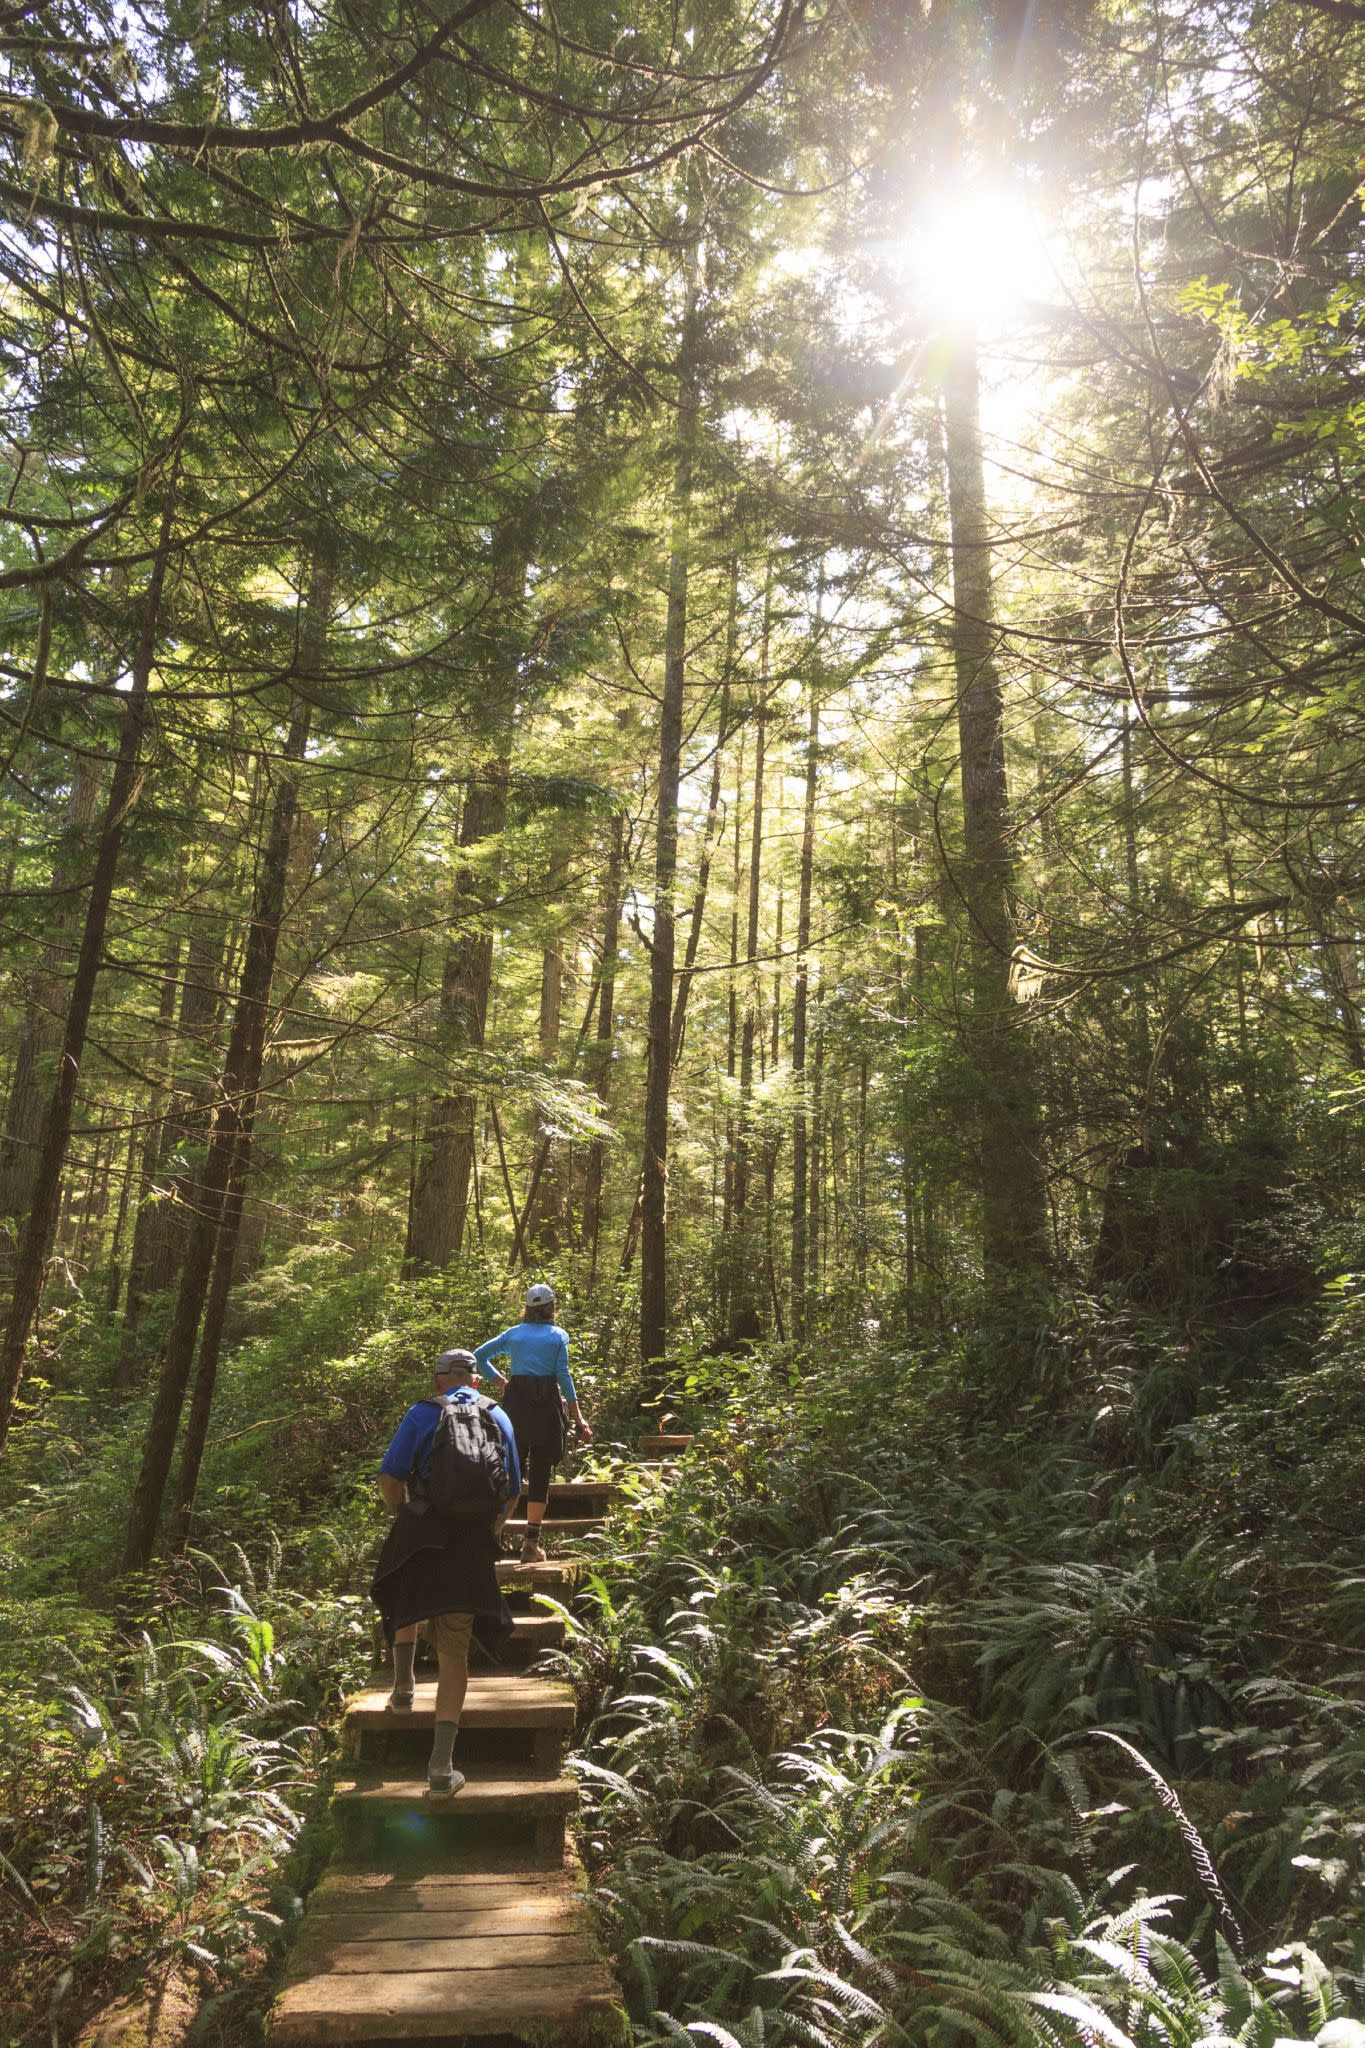 The temperate rain forests of North America have disappeared beneath loggers' chainsaws, and the Trump Administration wants more cutting in Alaska's Tongass National Forest. Thankfully, a president in a wheelchair - Franklin D. Roosevelt - created a national park that saved cathedral forests in our state. The Hoh is a place to savor the forest primeval, either through nature walks or on the lengthy trail that takes climbers to Mount Olympus. Watch Roosevelt Elk appear out of and disappear into the mist. Experience the silence of the place and appreciate the fact that you own this land.